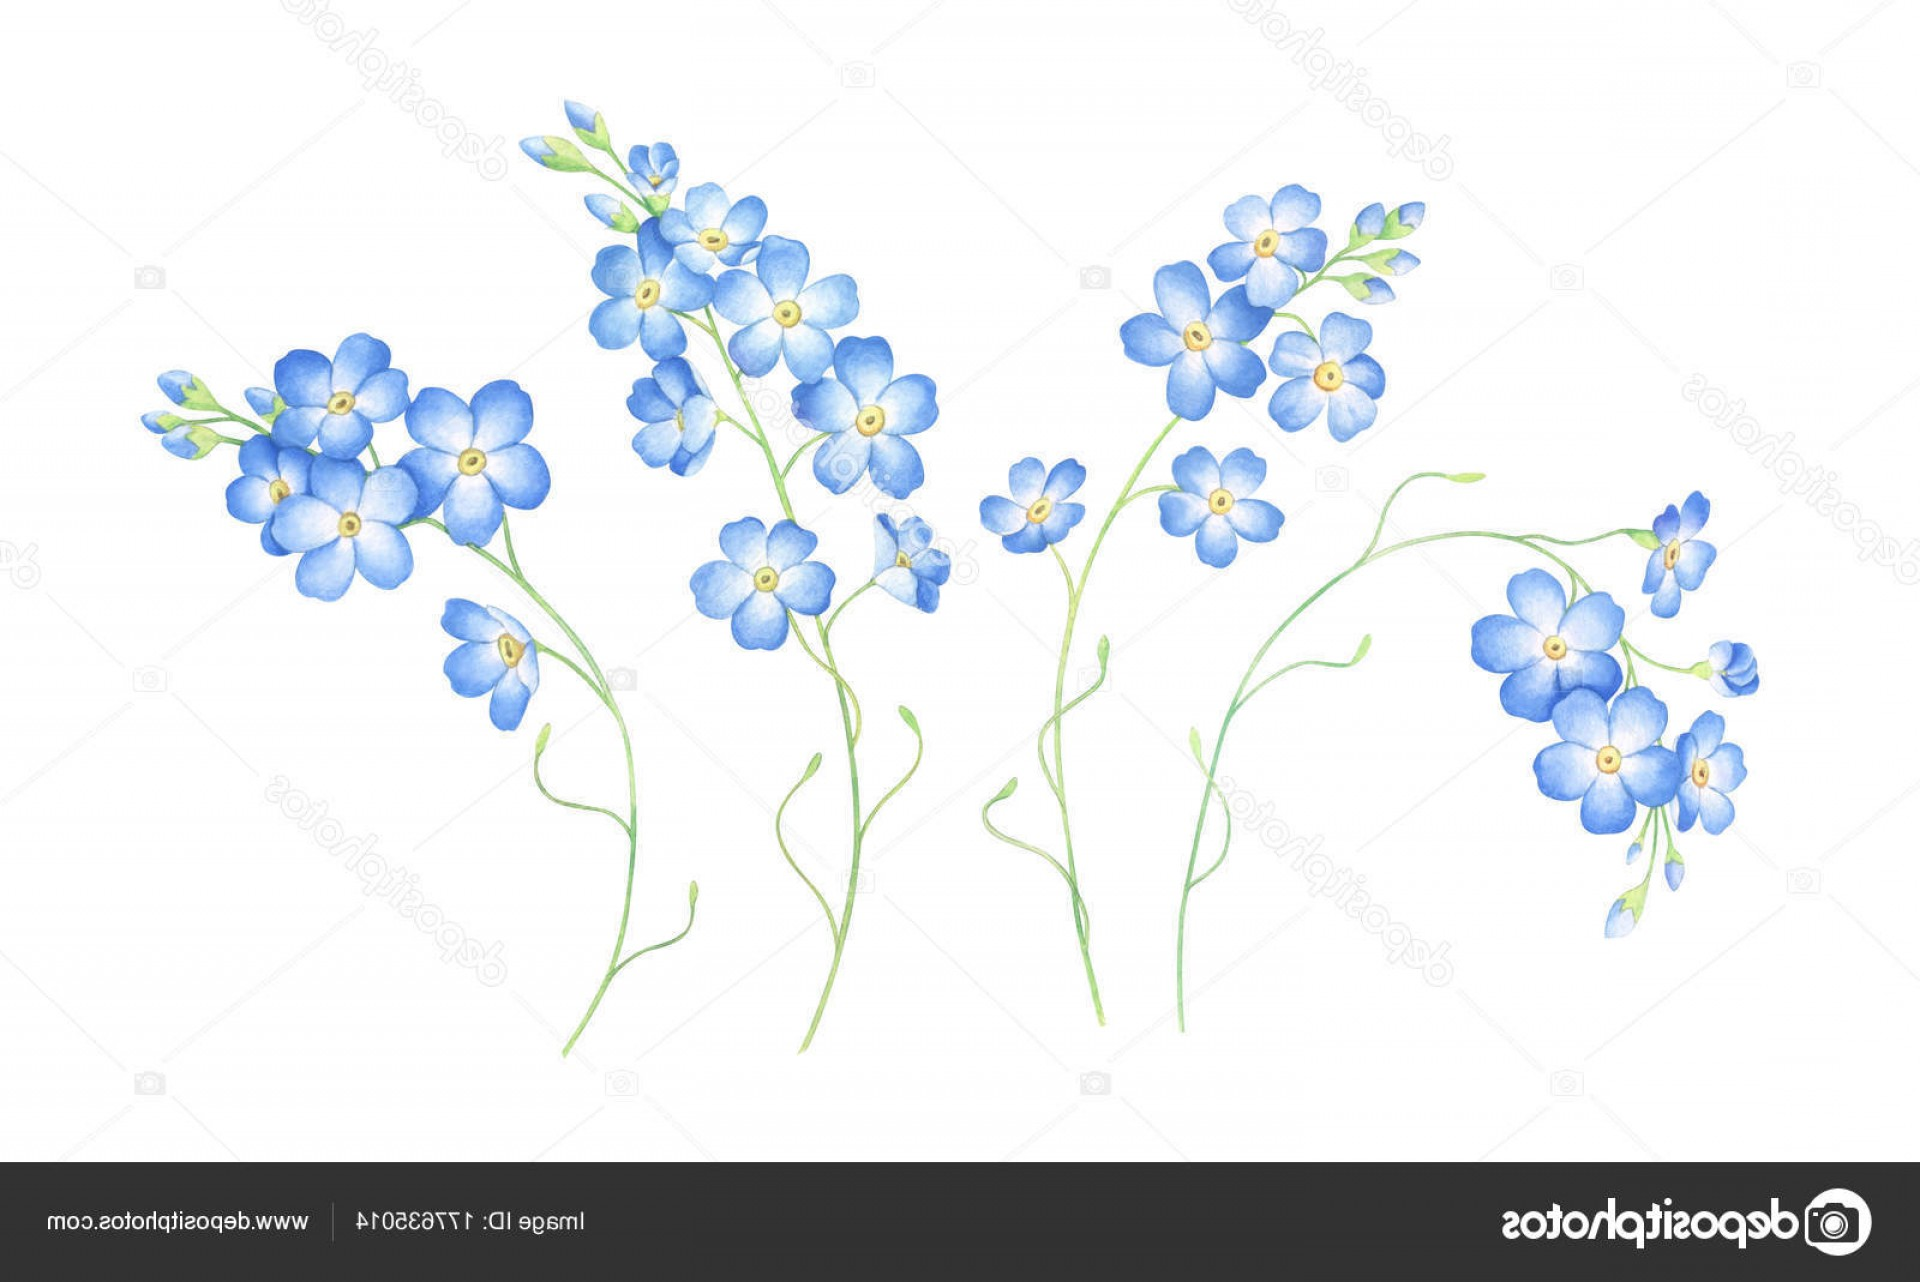 Get For Me Not Flower Watercolor Vector Art: Stock Photo Watercolor Set Of Forget Me